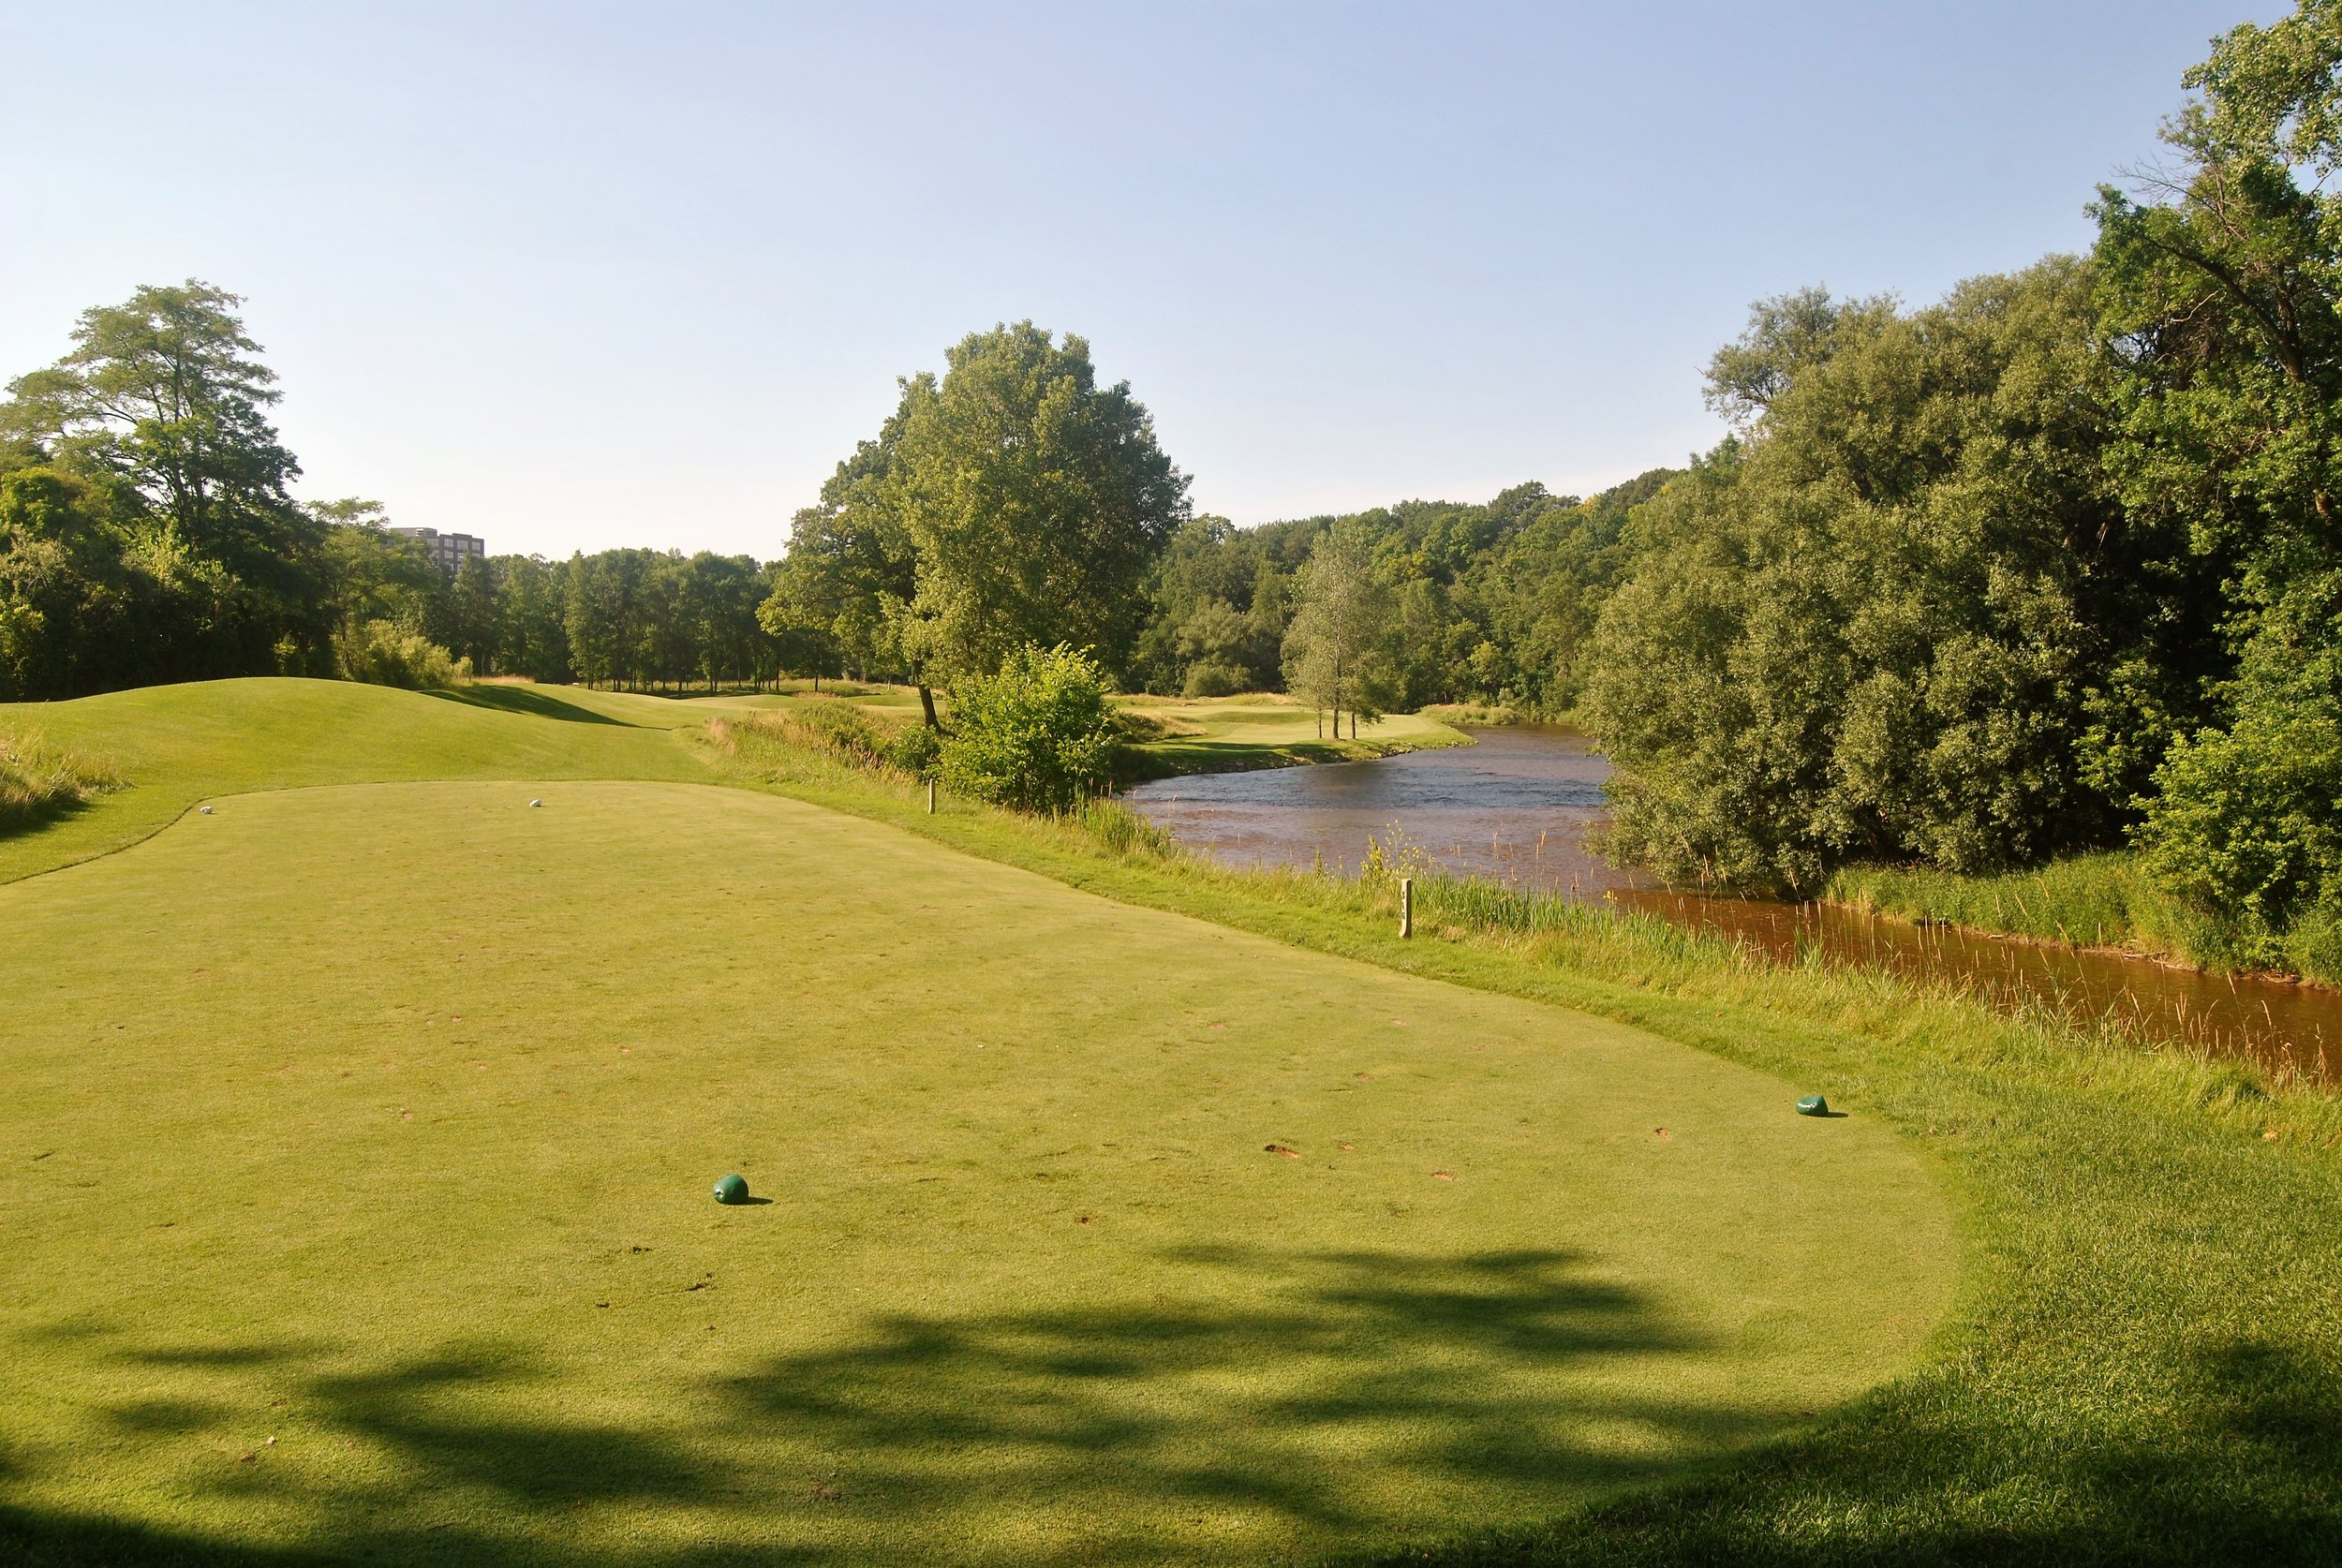 The ninth hole has the river on the left, a pond on the right that you can't see in the picture, and a couple of bunkers in the middle of the fairway